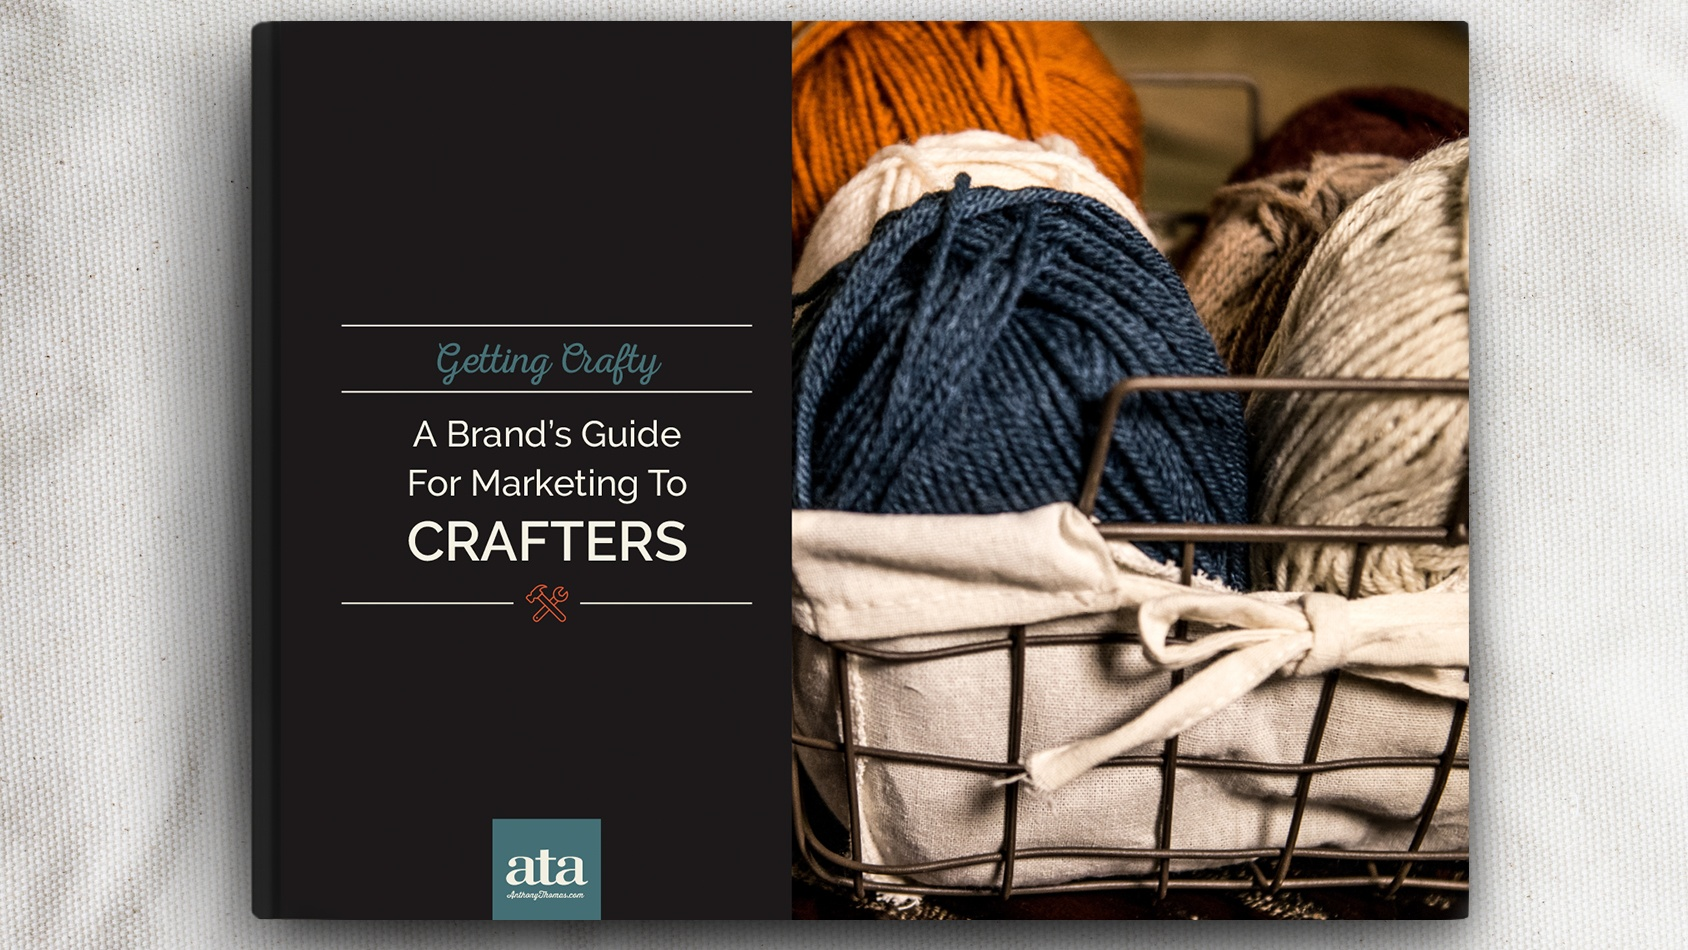 Getting_Crafty_BG